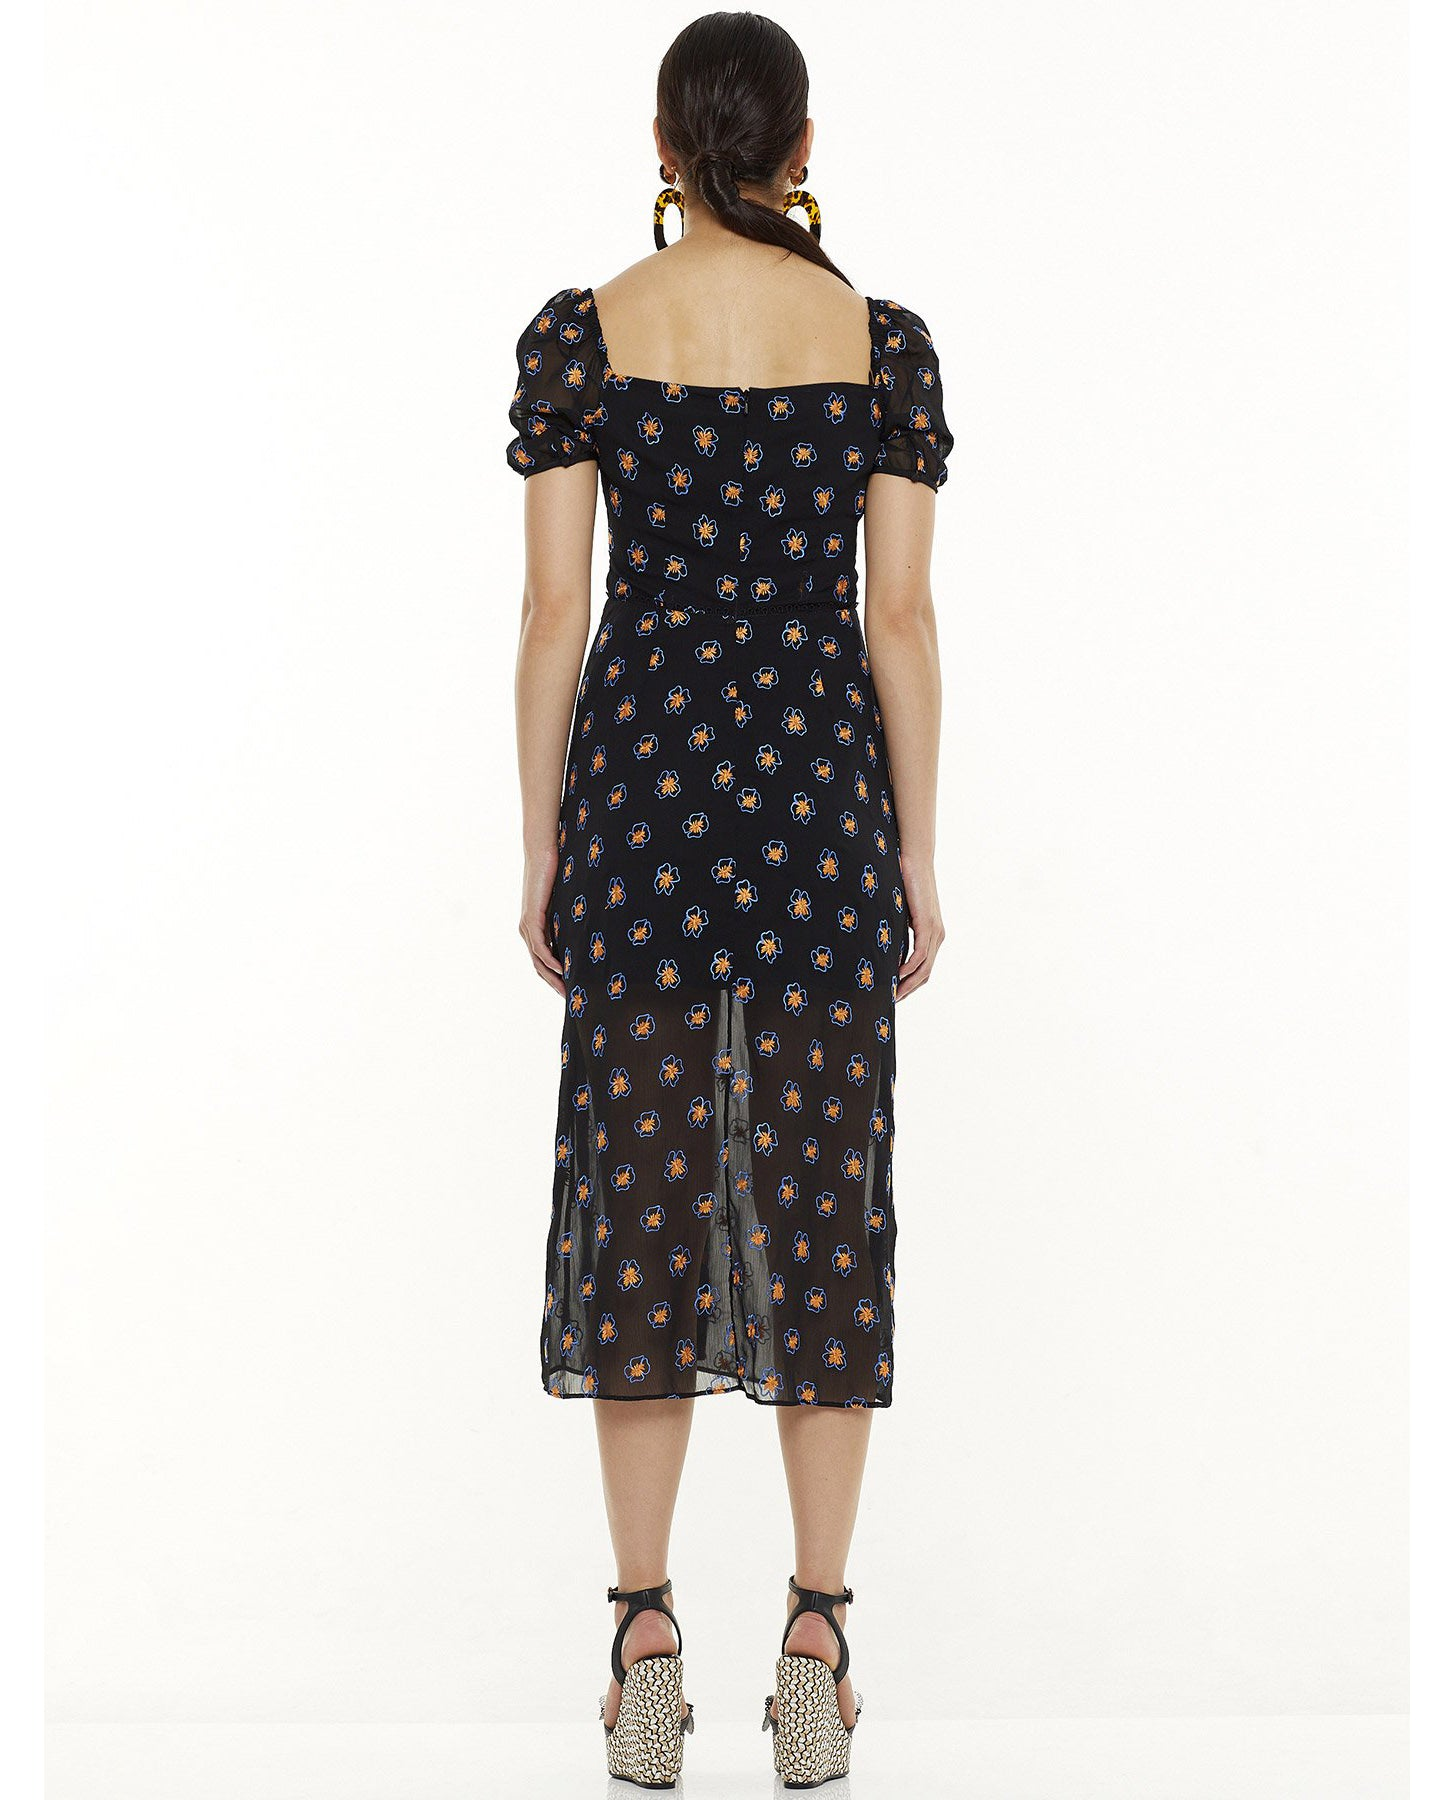 TALULAH LOVE ME MIDI DRESS